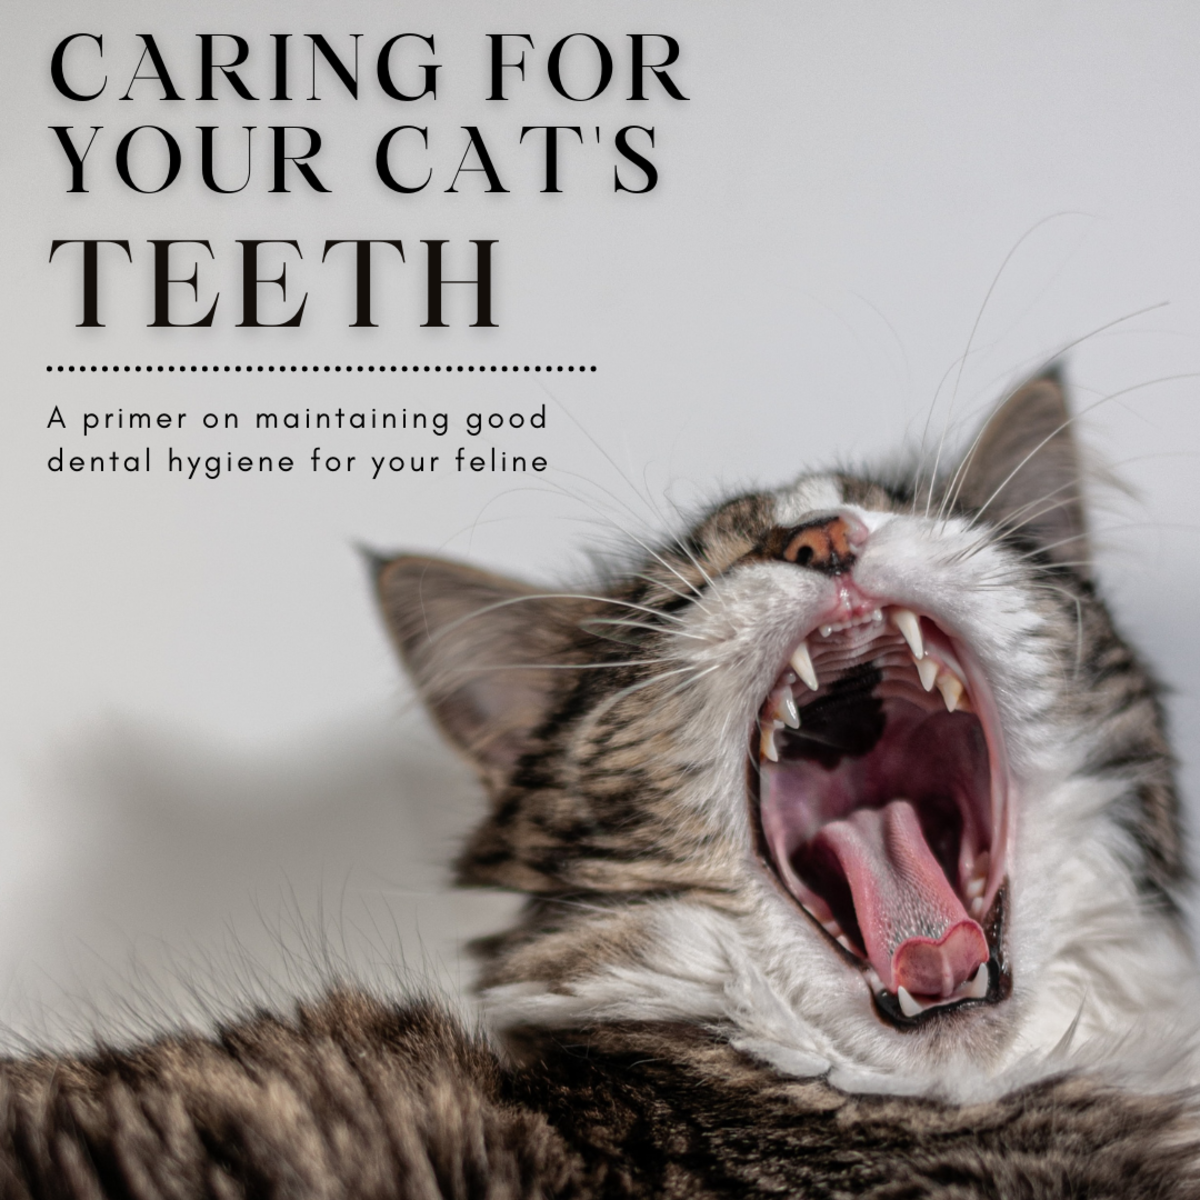 This guide will provide you with the information you need to help regularly maintain your cat's dental hygiene to keep them at their healthiest.